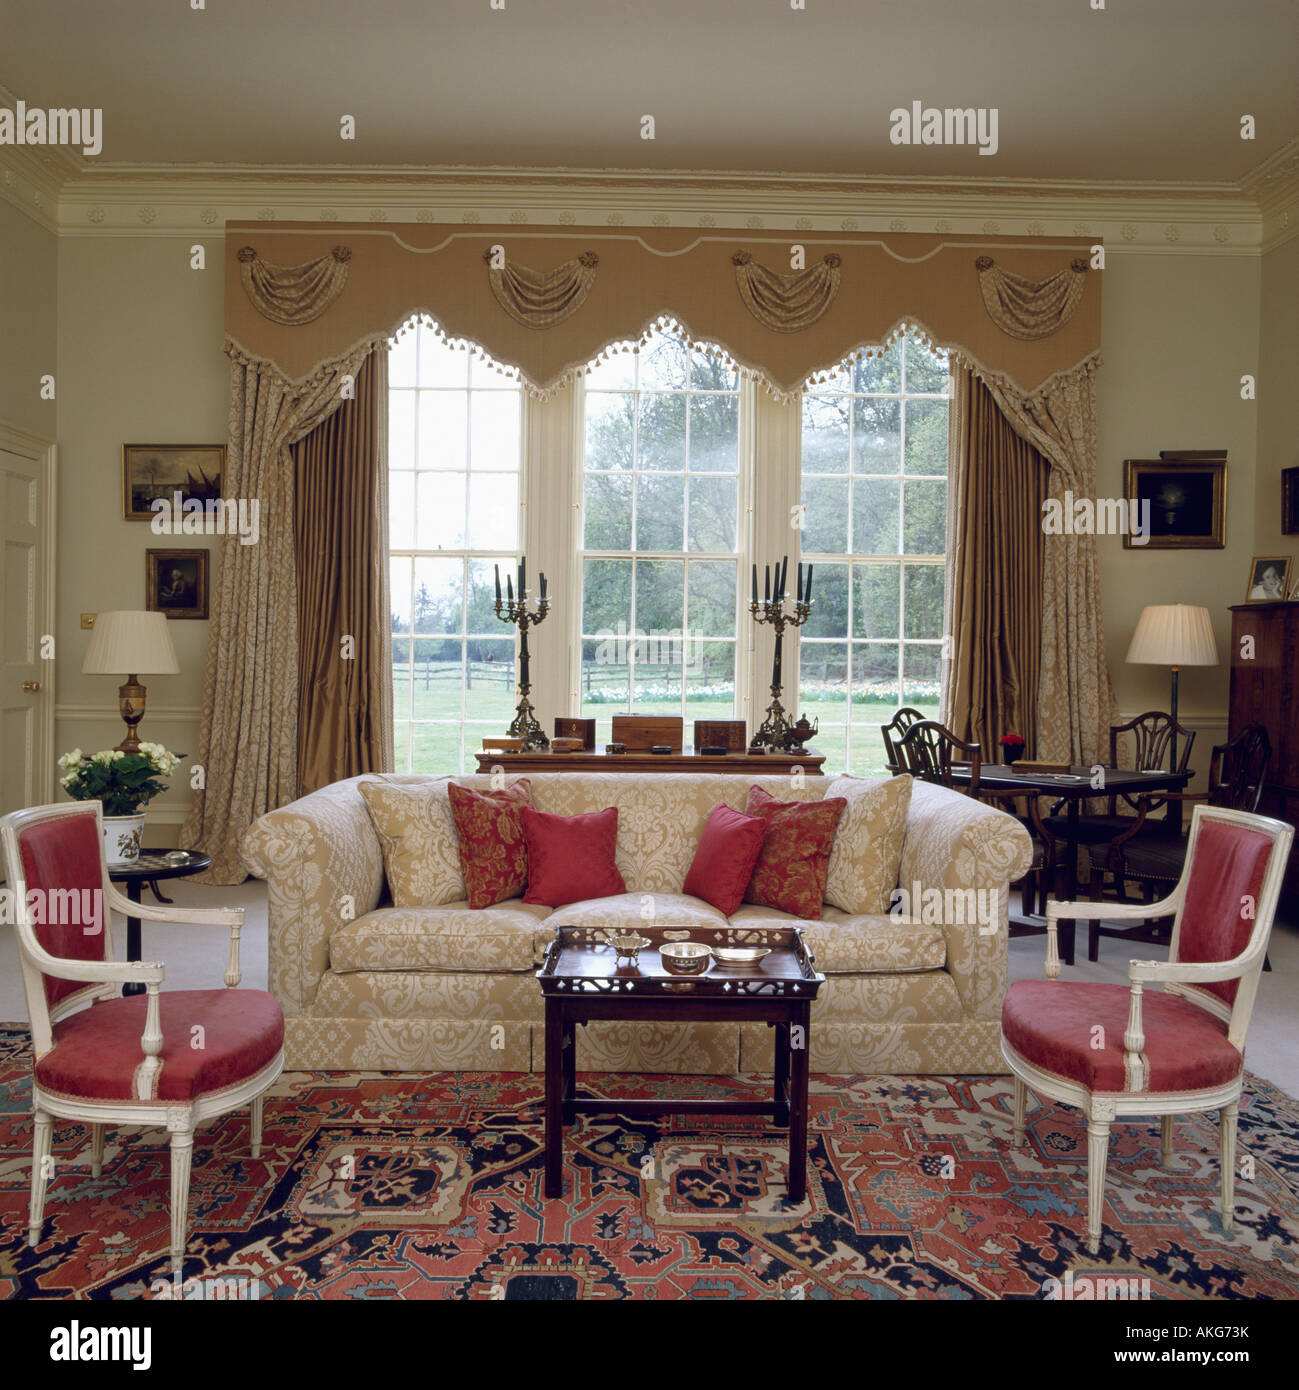 Cream Sofa In Front Of Window With Ornate Pelmet And Cream Curtains